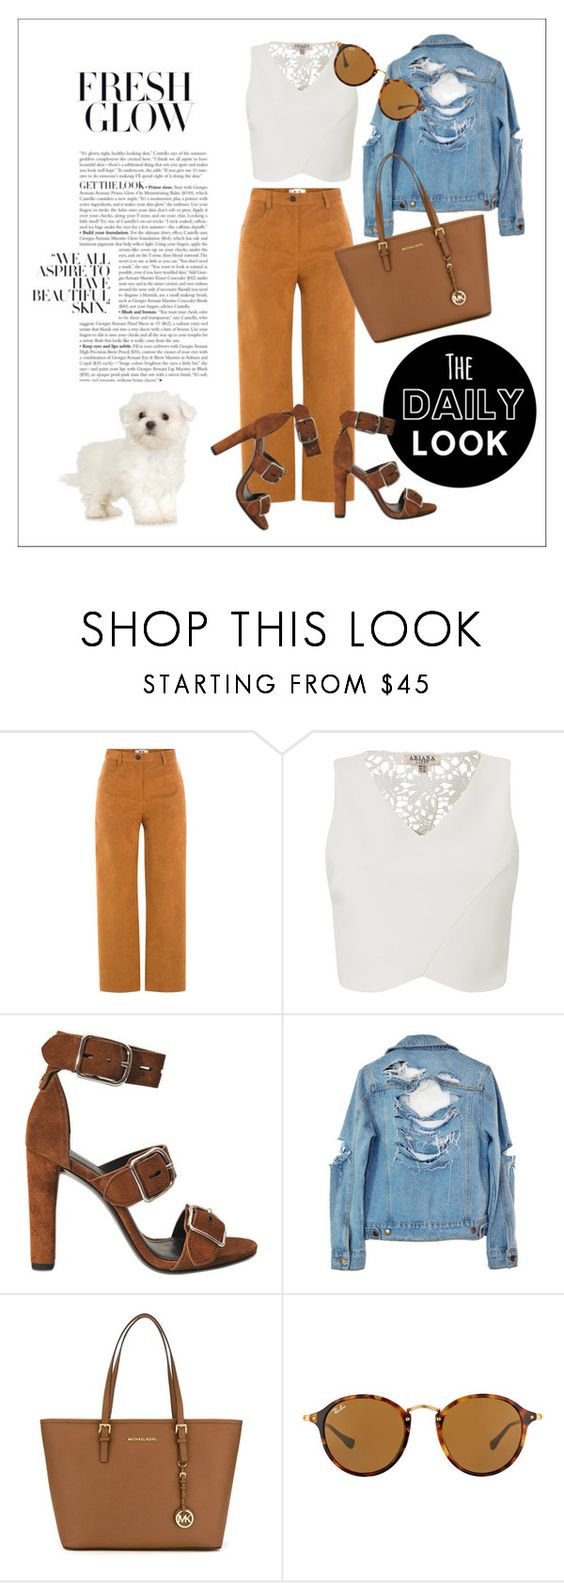 """""""The daily look..."""" by fawn-fleur ❤ liked on Polyvore featuring MSGM, Lipsy, Alexander Wang, High Heels Suicide, MICHAEL Michael Kors and Ray-Ban"""